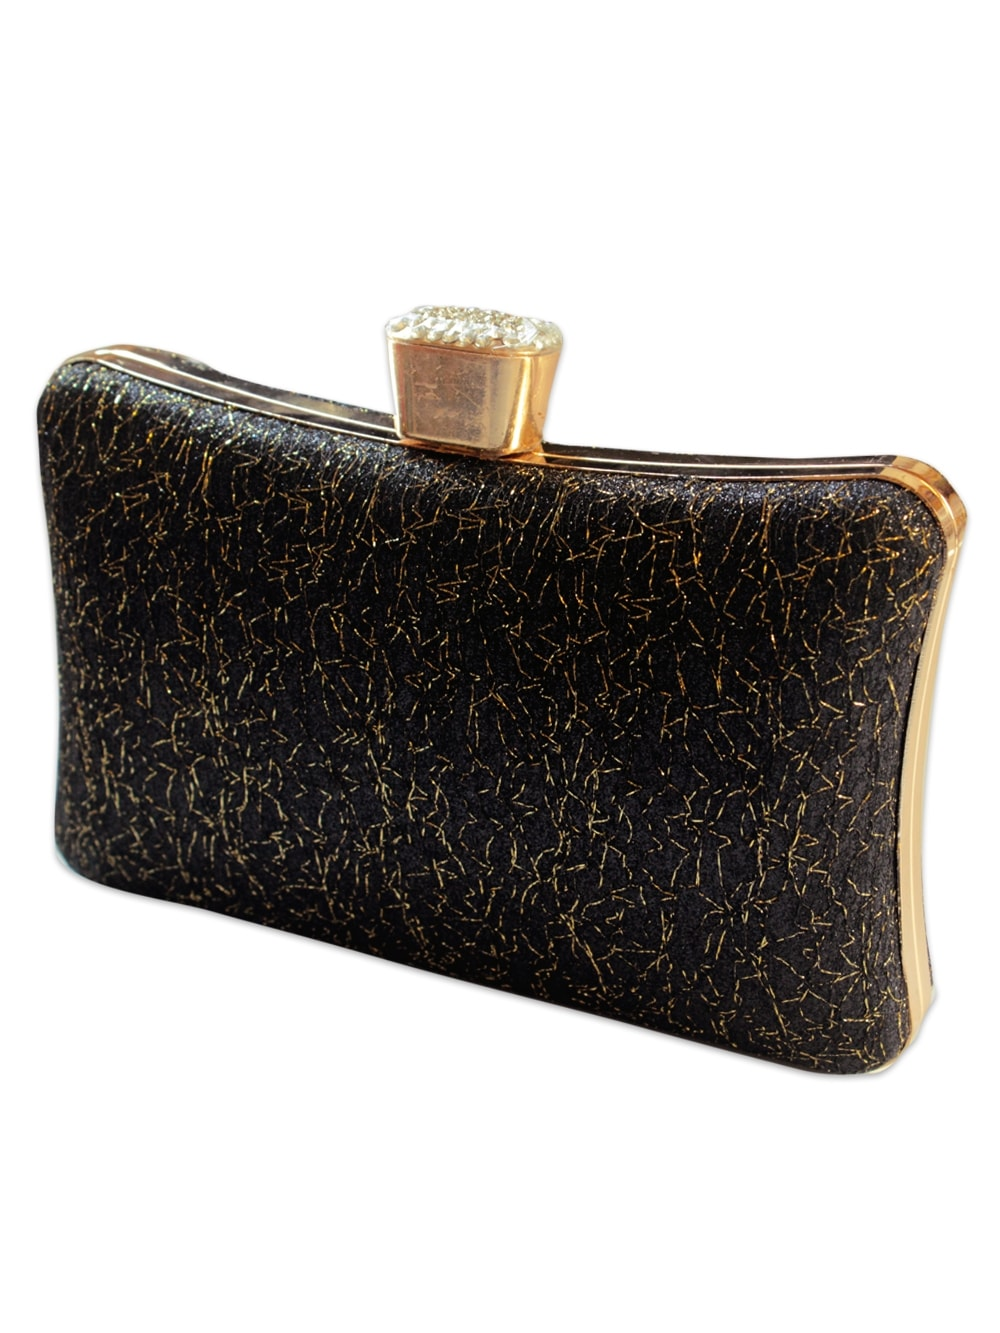 Shop for clutch evening handbags at Simply Dresses. Bridal purses, sequin prom purses, formal handbags, clutches, and special occasion purses. Removable Chain Gold Clutch $ Share. Loved! Be sure to sign up or login to save. Login Sign Up Sondra Roberts Black and Gold Clutch $ Share. Loved! Be sure to sign up or login to save.